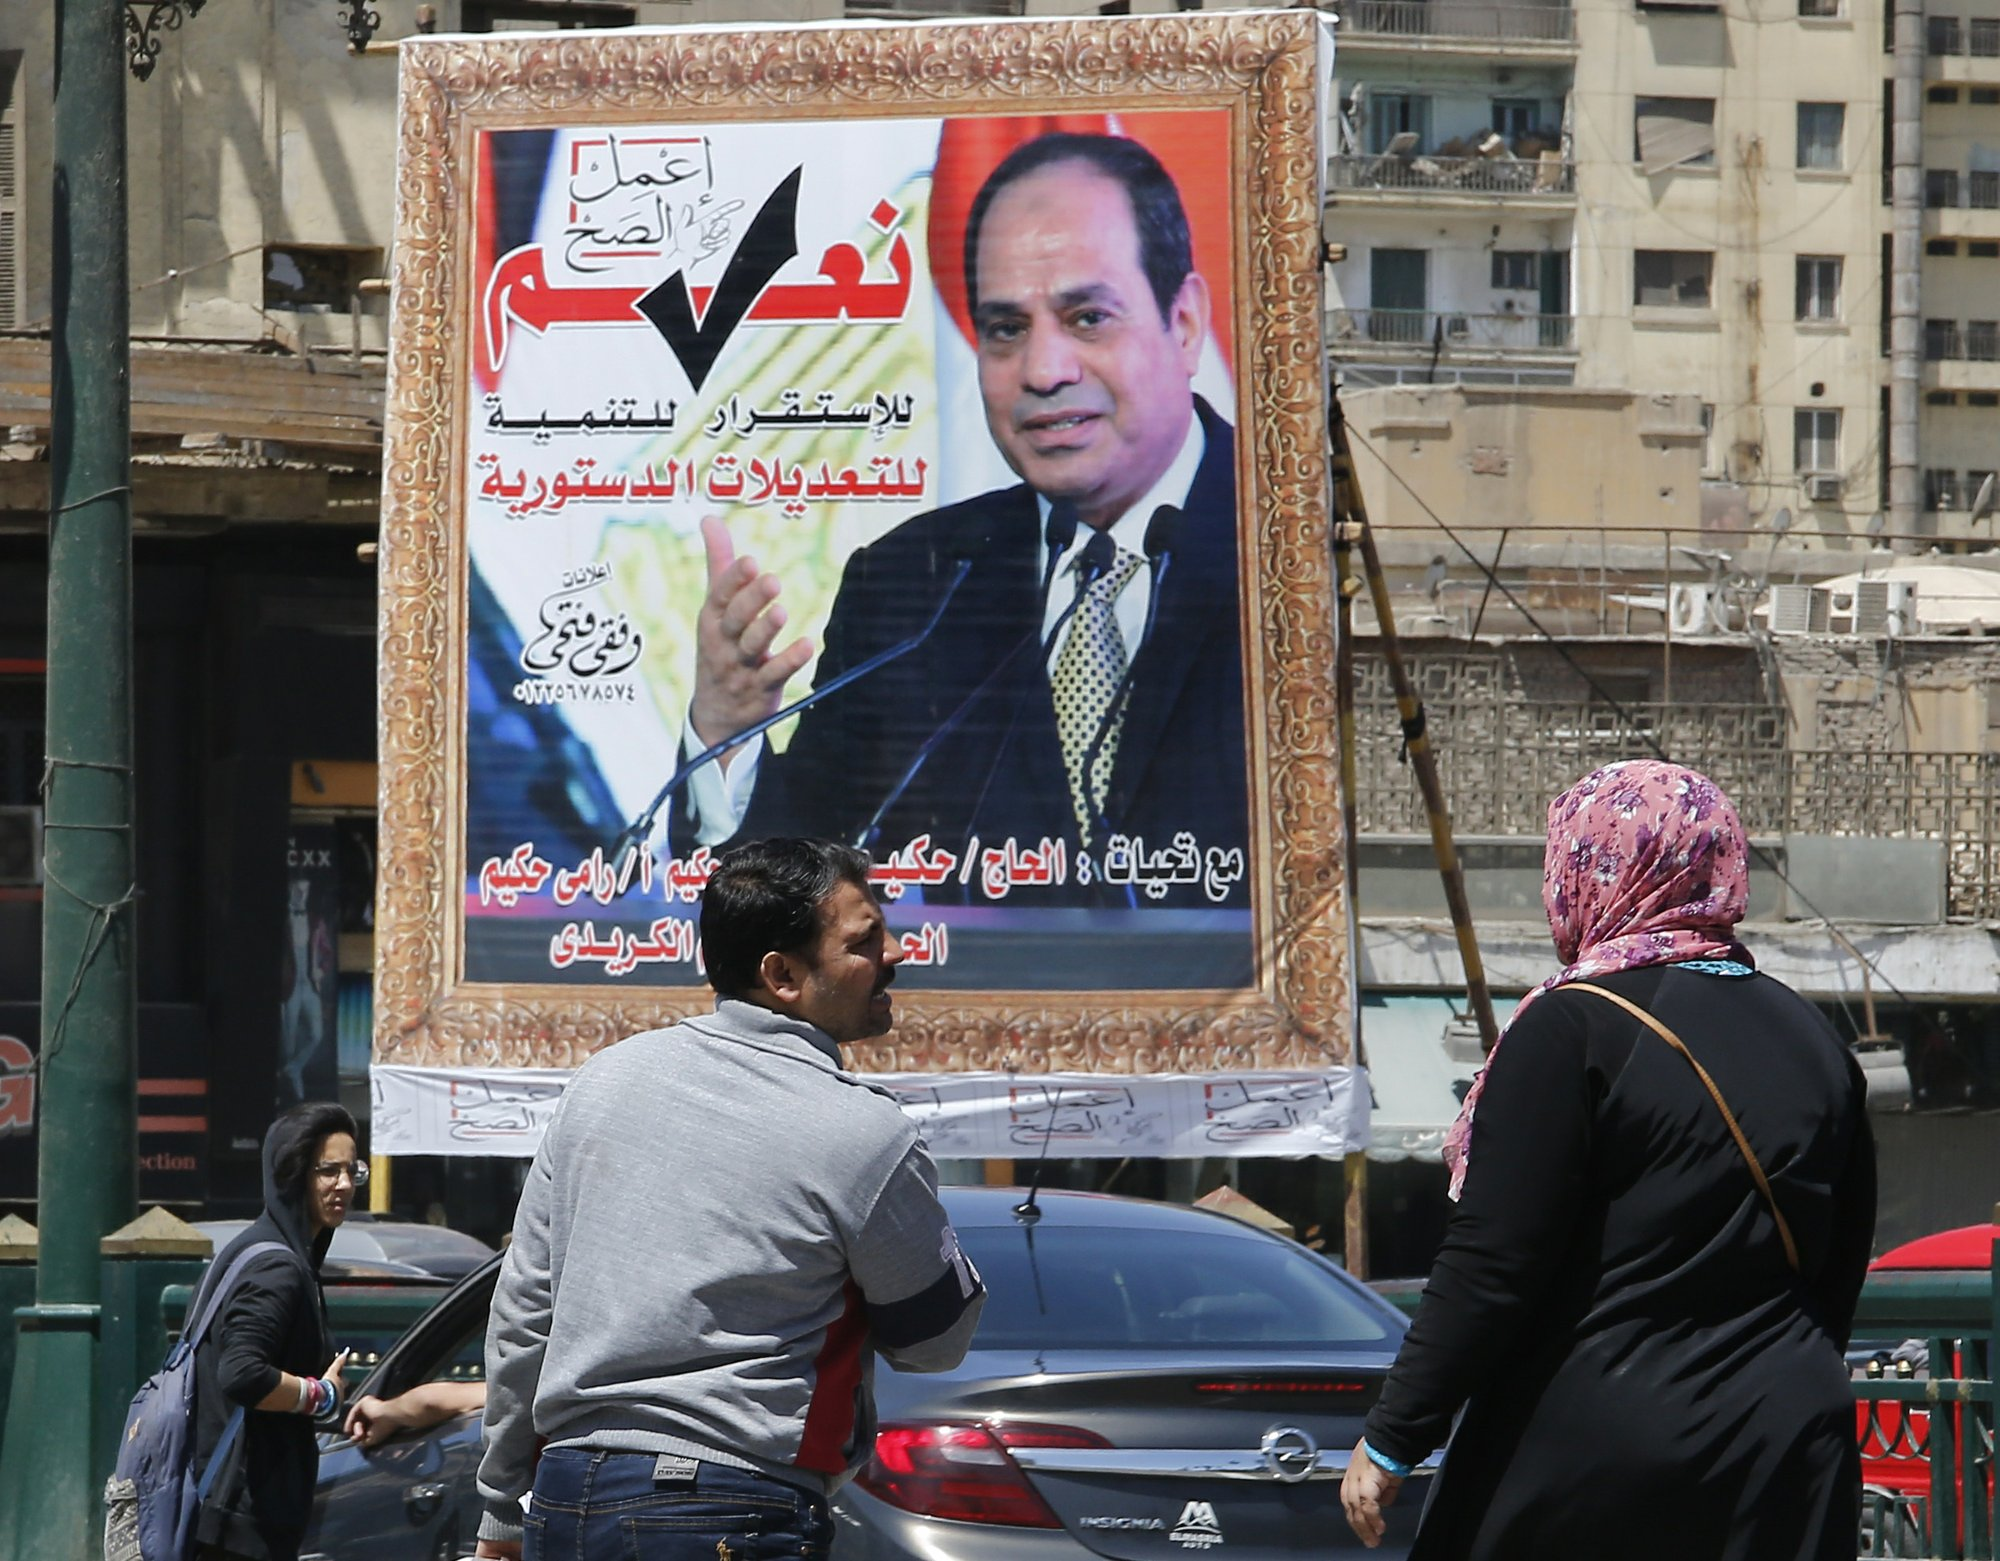 Egypt lawmakers pass amendments now headed to referendum